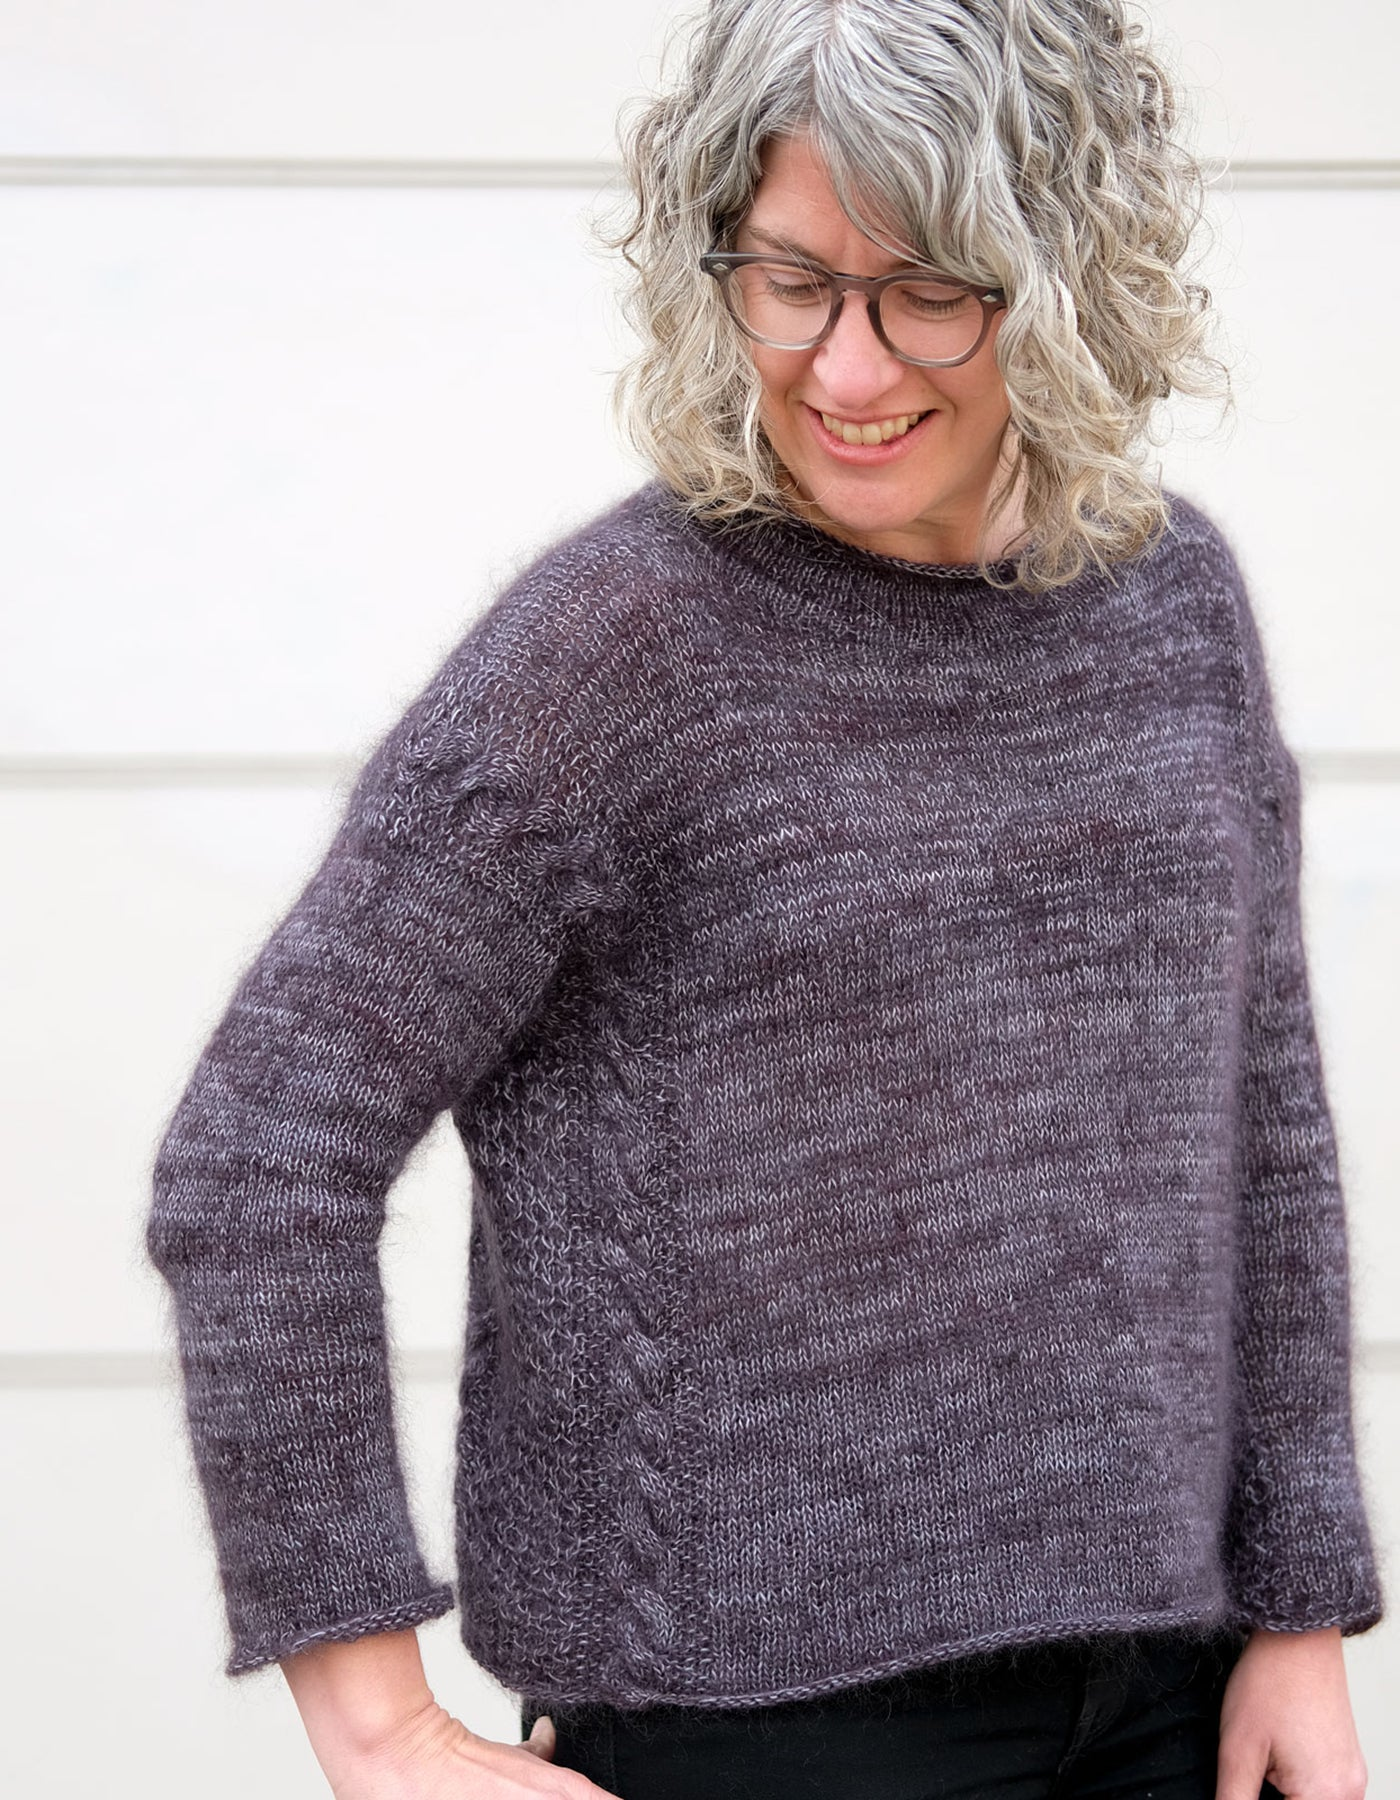 Jaime in her handknit marled yarn soiree sweater